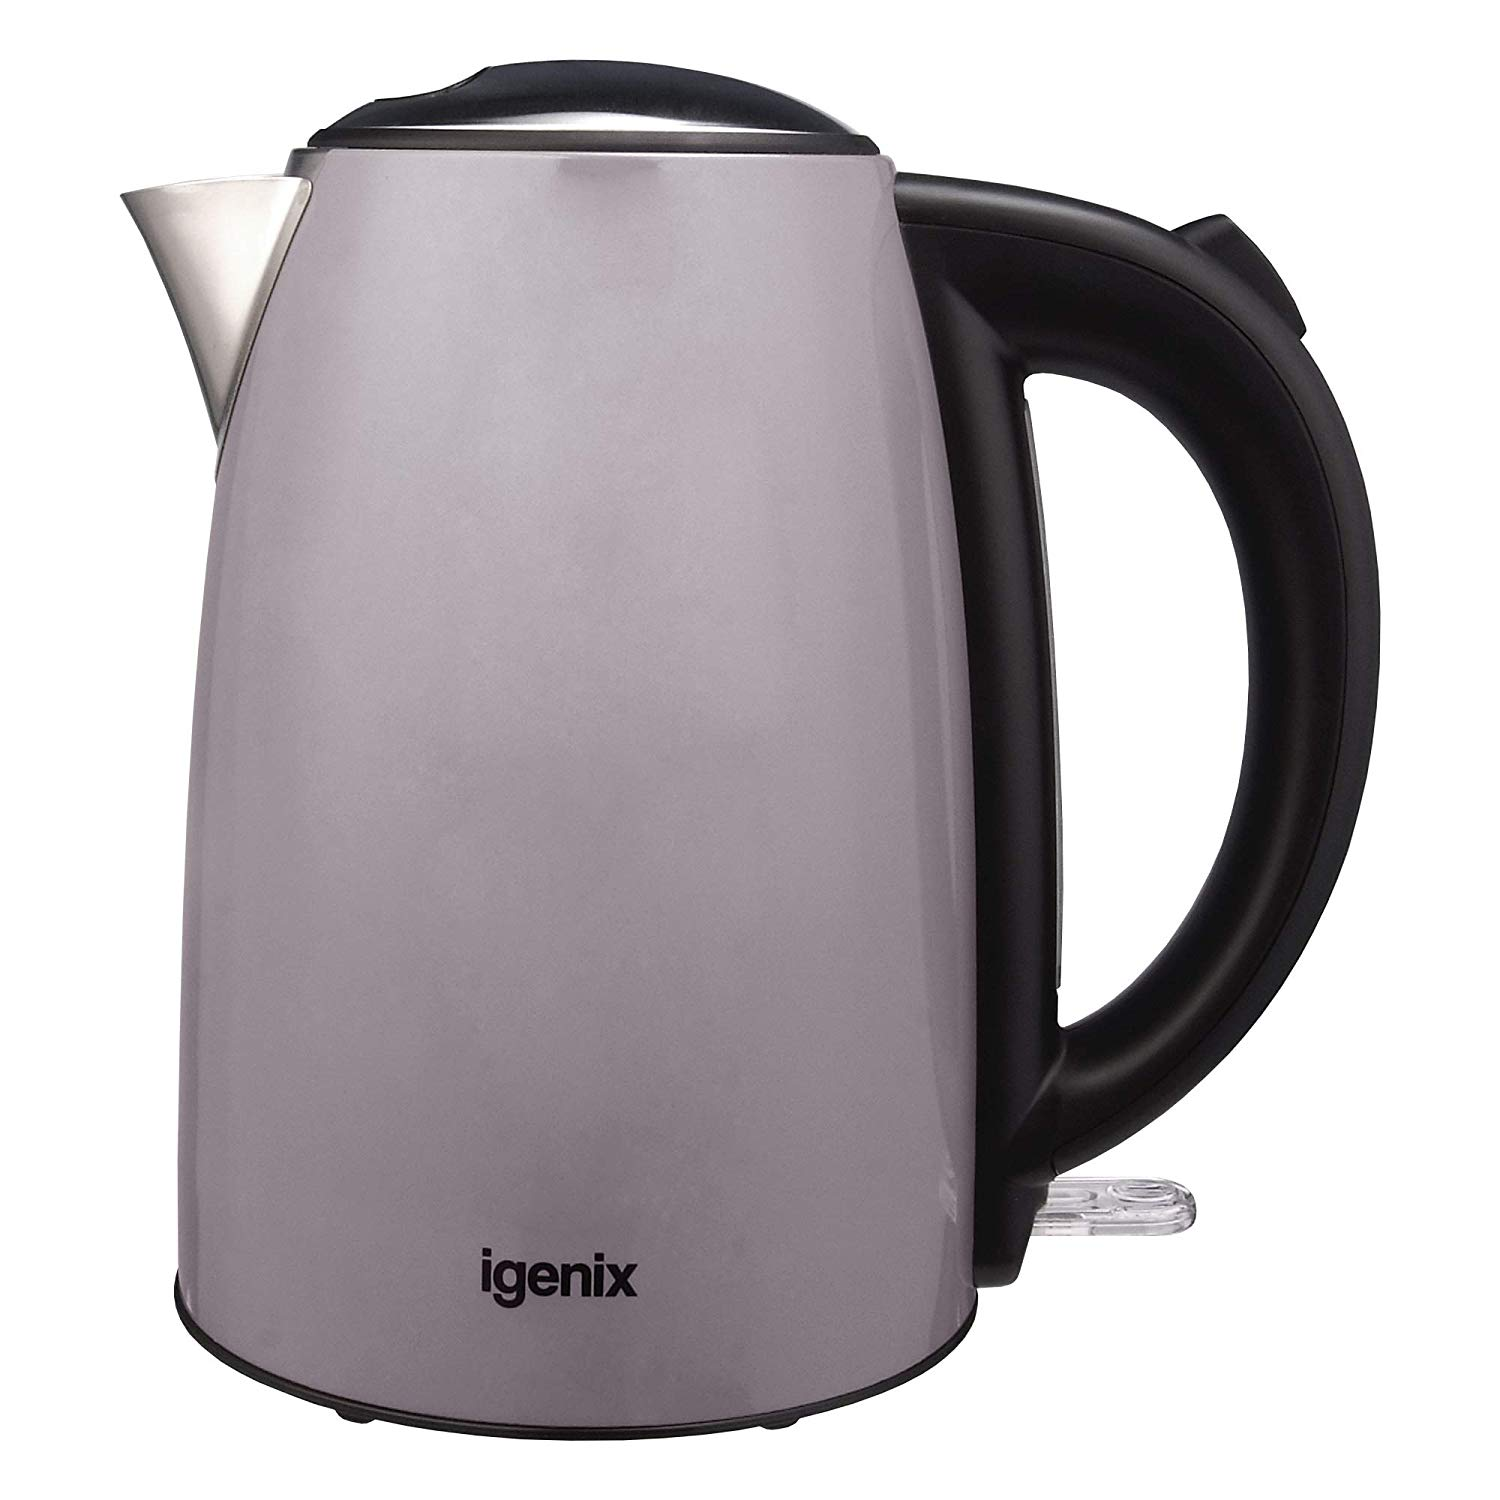 Igenix Grey Stainless Steel Kettle 1.7ltr 3Kw Lid with Push Button